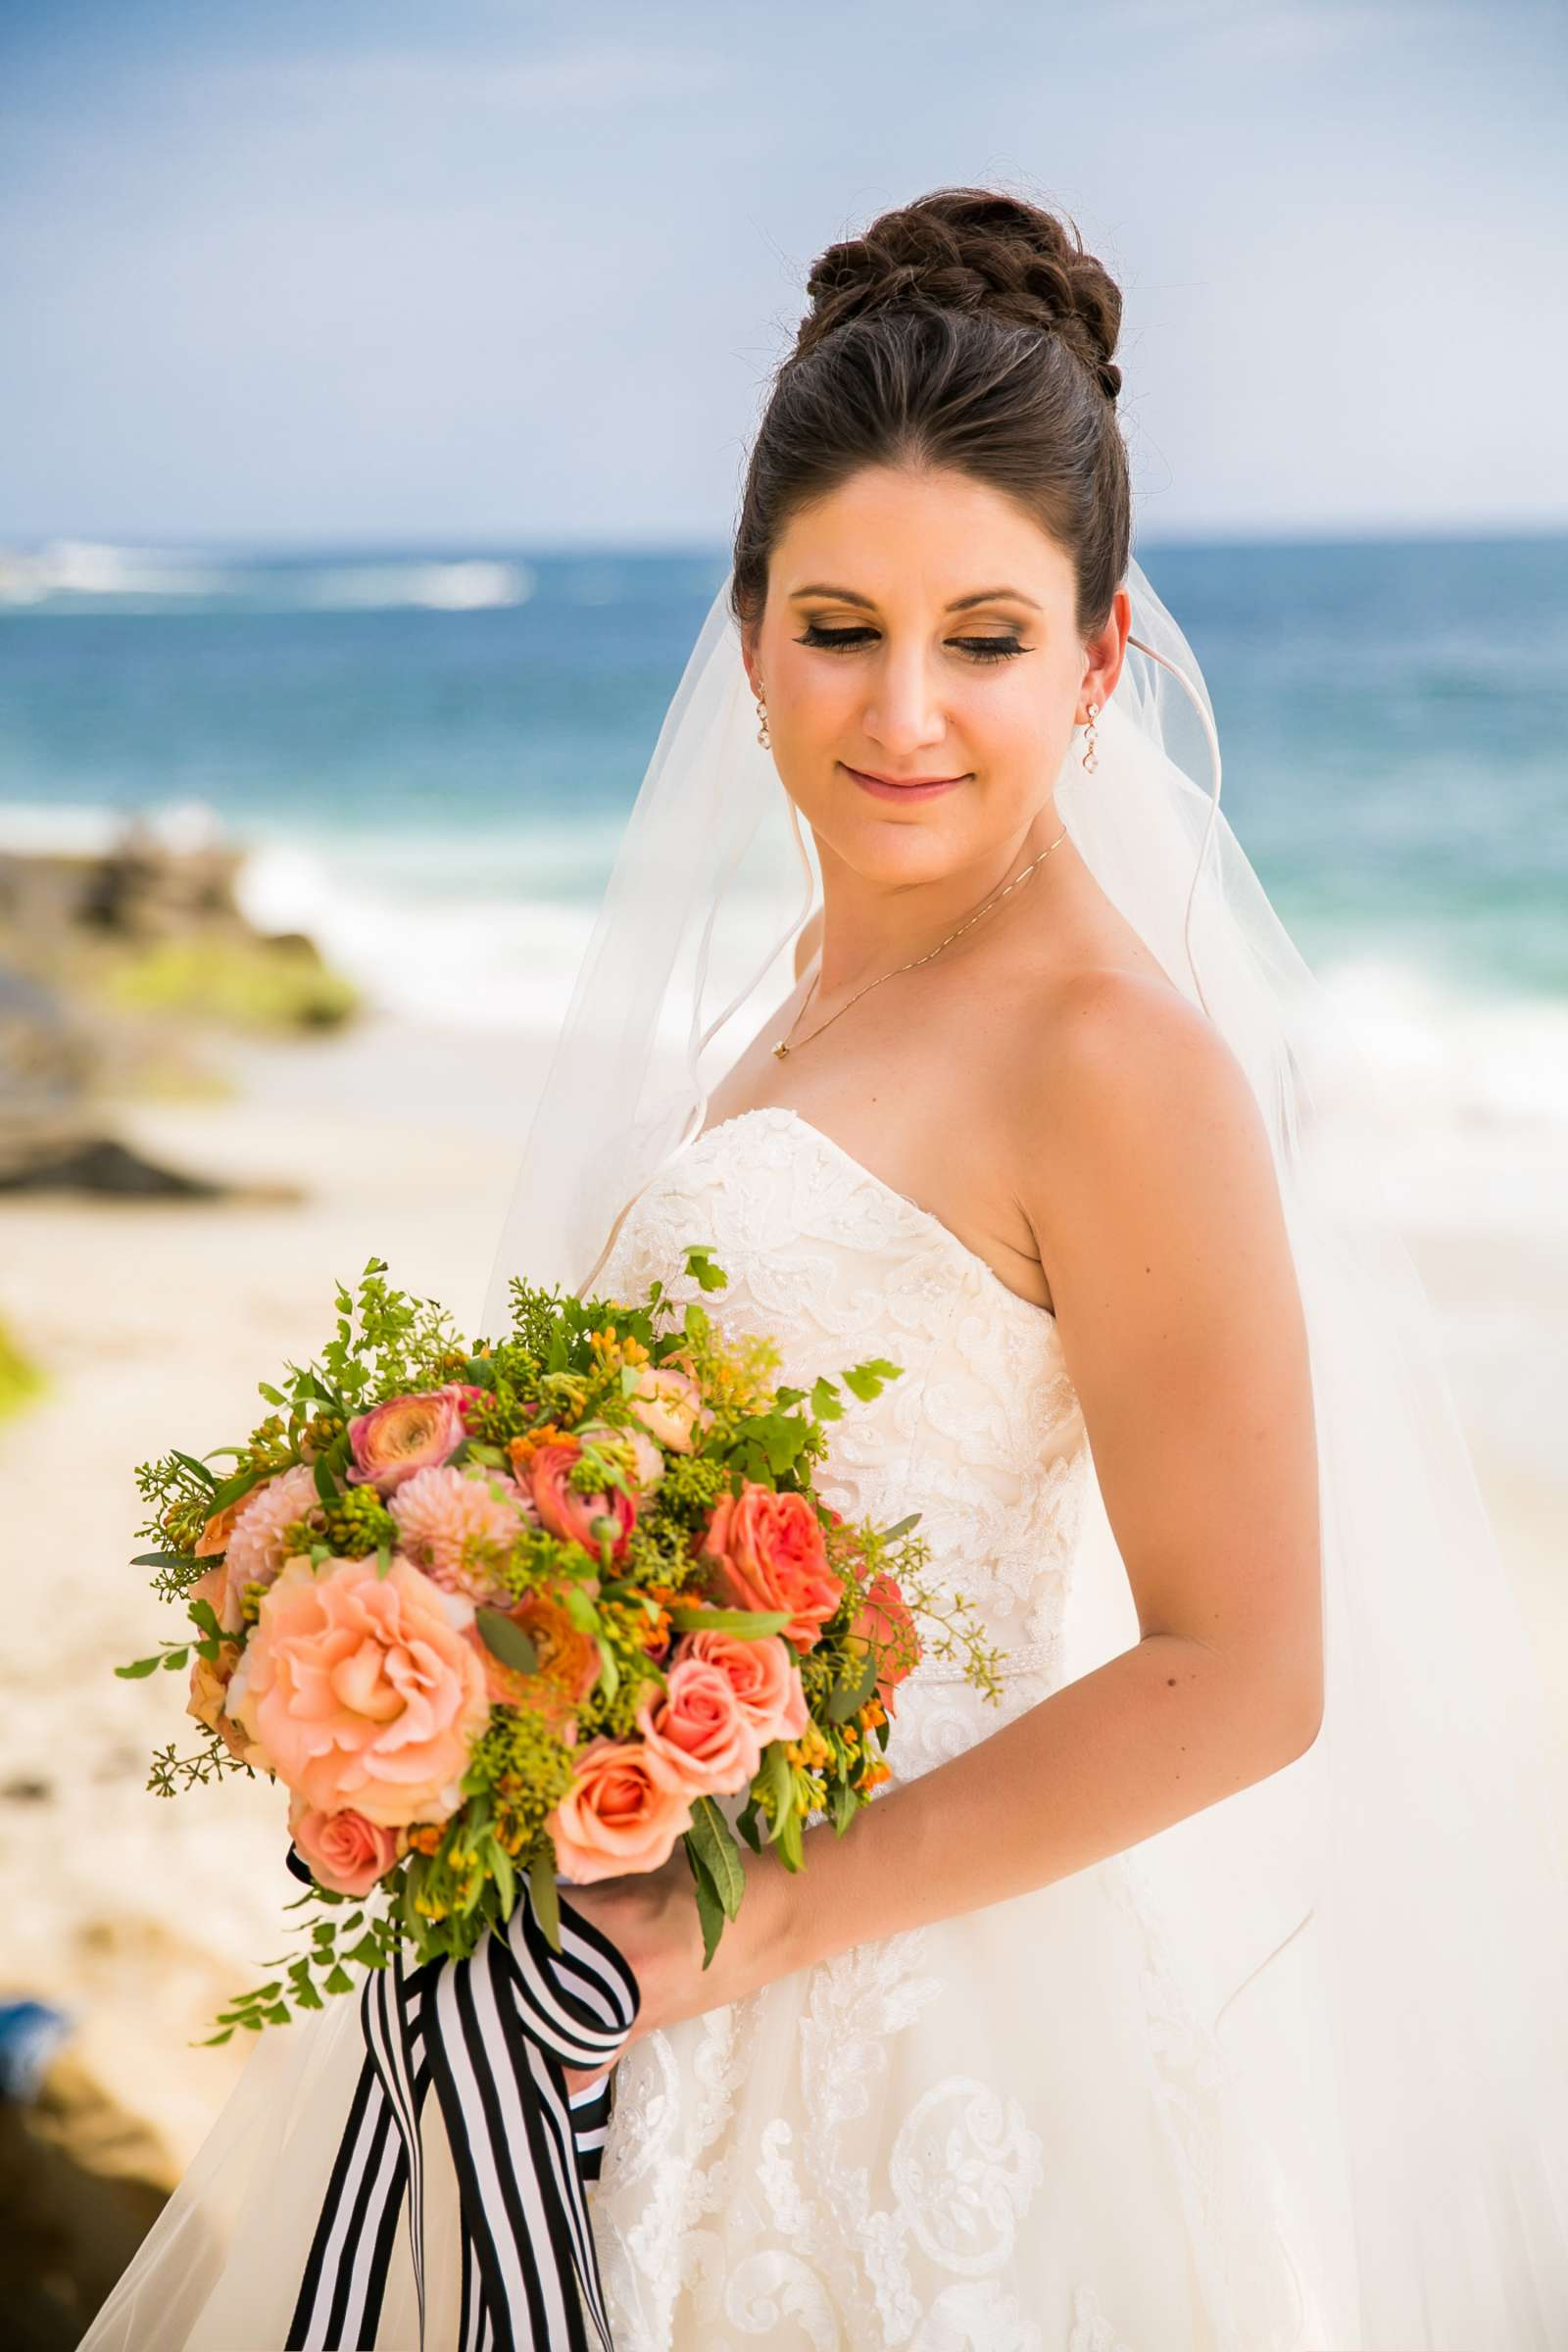 Bahia Hotel Wedding coordinated by I Do Weddings, Meredith and Jack Wedding Photo #63 by True Photography